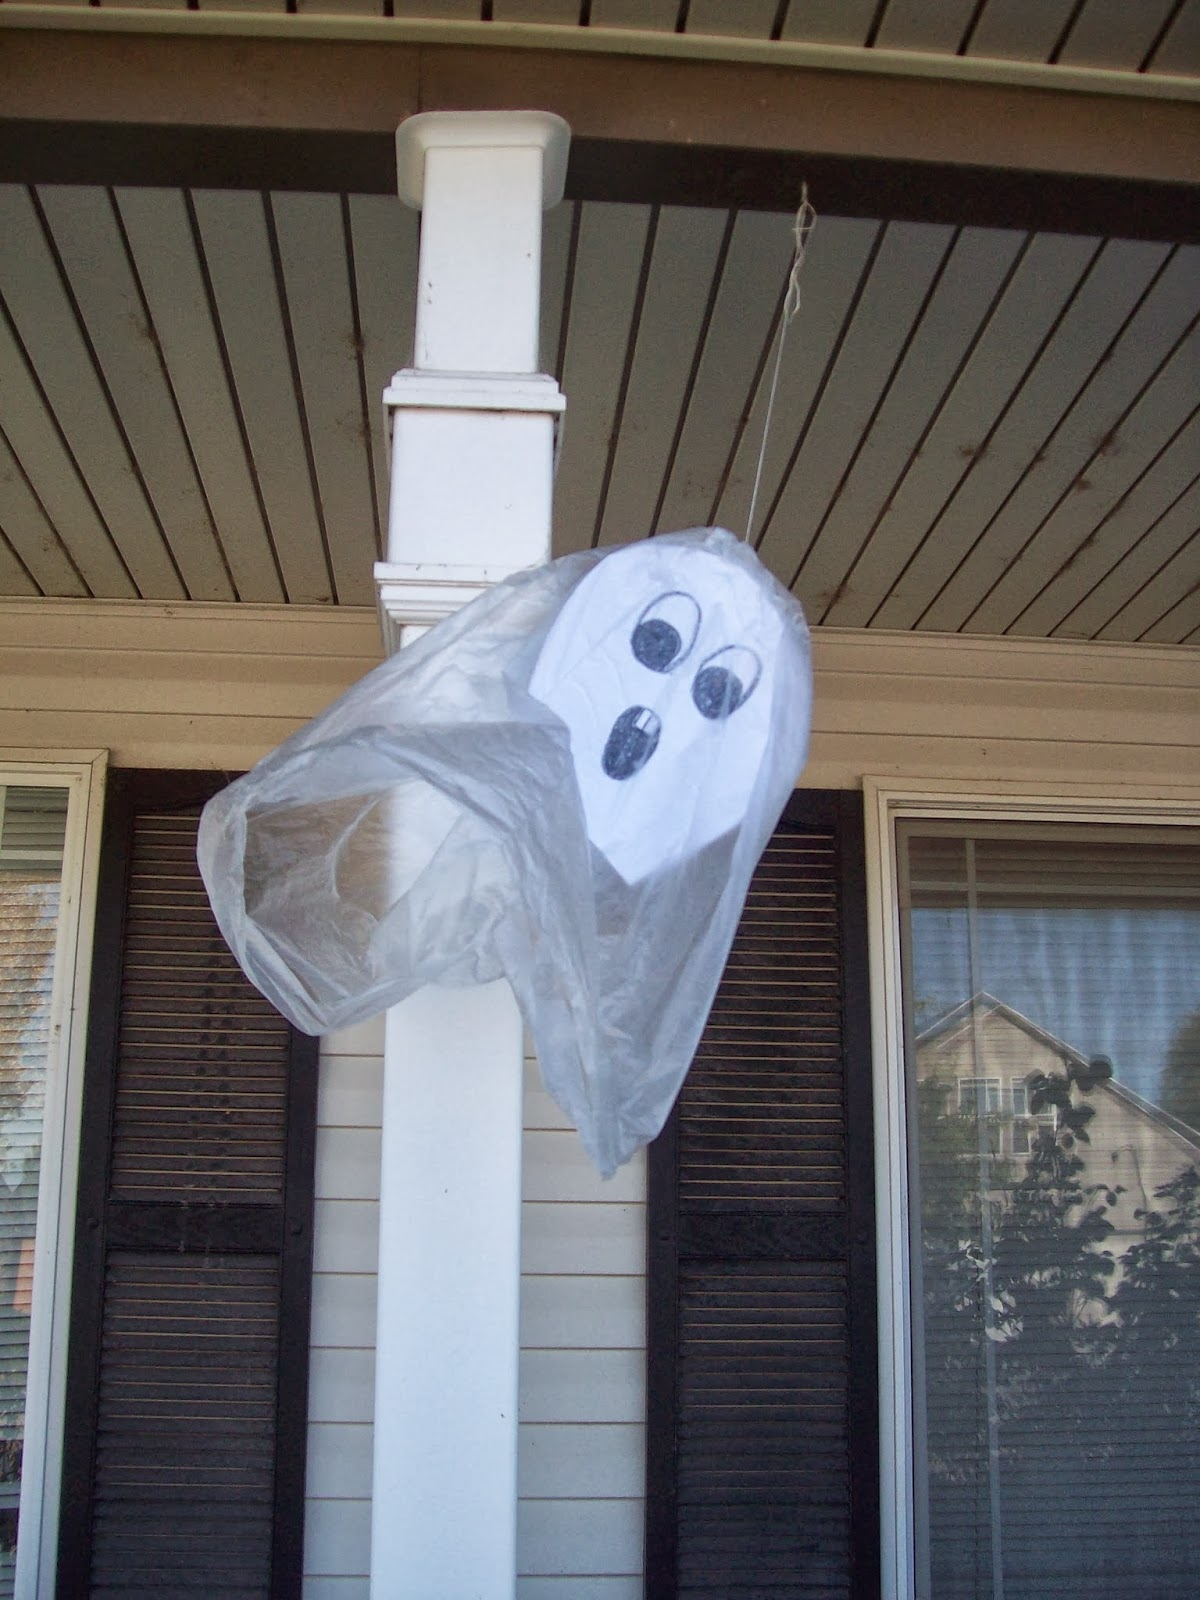 50 Awesome Halloween Decorations to Make This Year – The